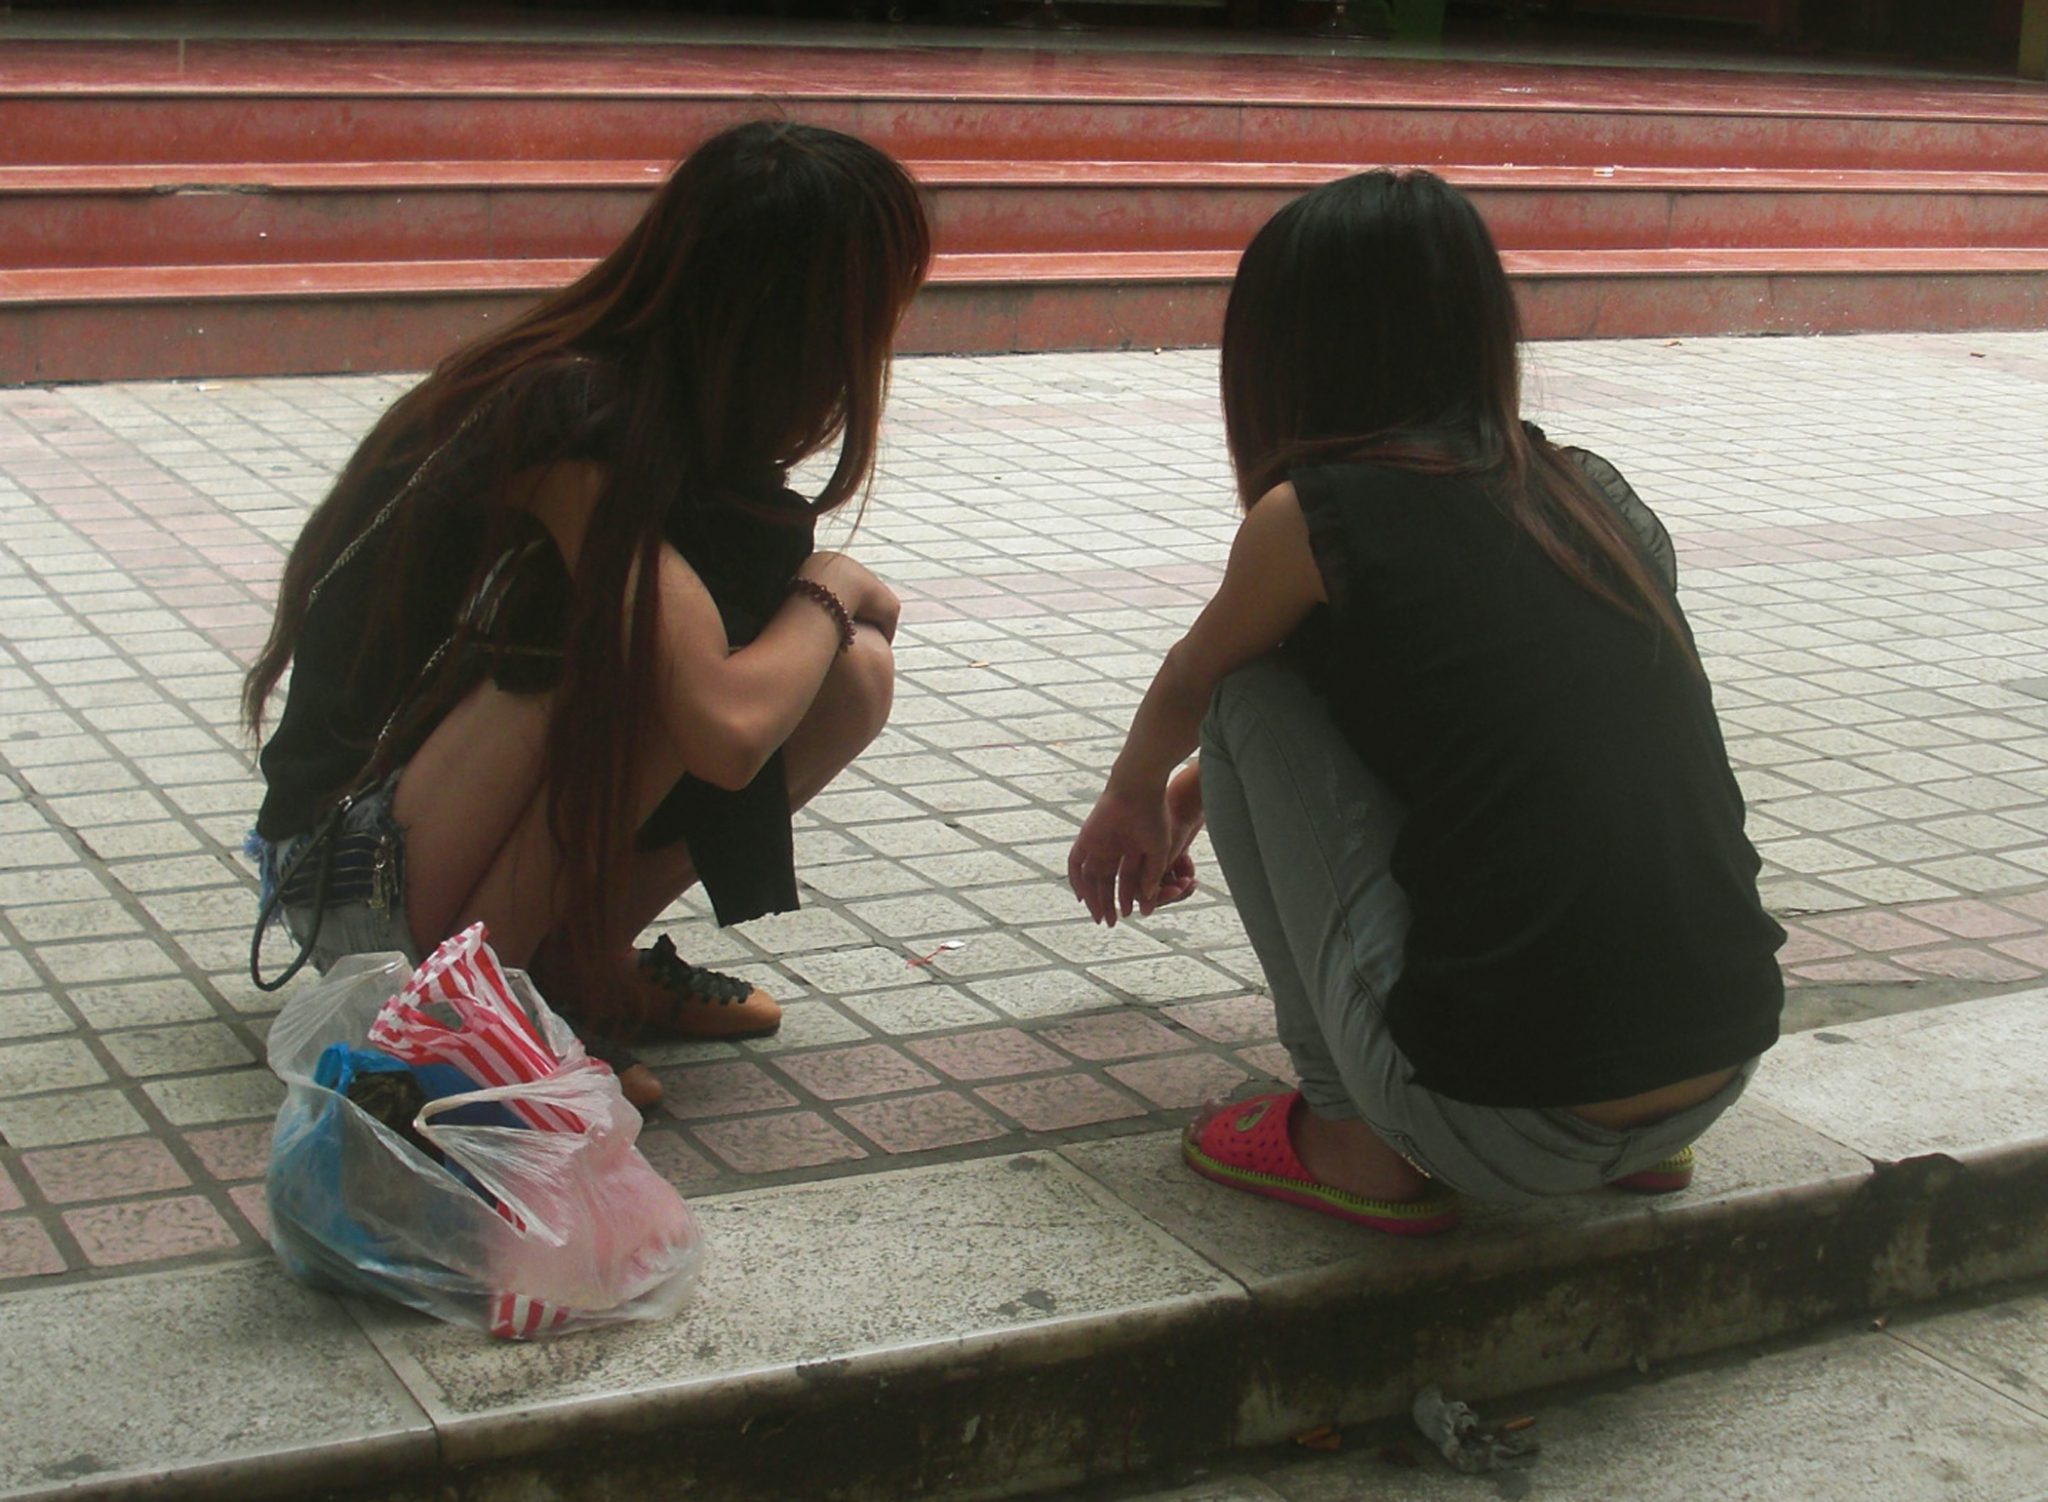 pure conversation movement in china China, of course, is notorious for having one of the cruelest population control restrictions in the world under the guise of its one-child policy, which has killed millions of unborn children (mostly girls) by way of forced abortions and infanticide.